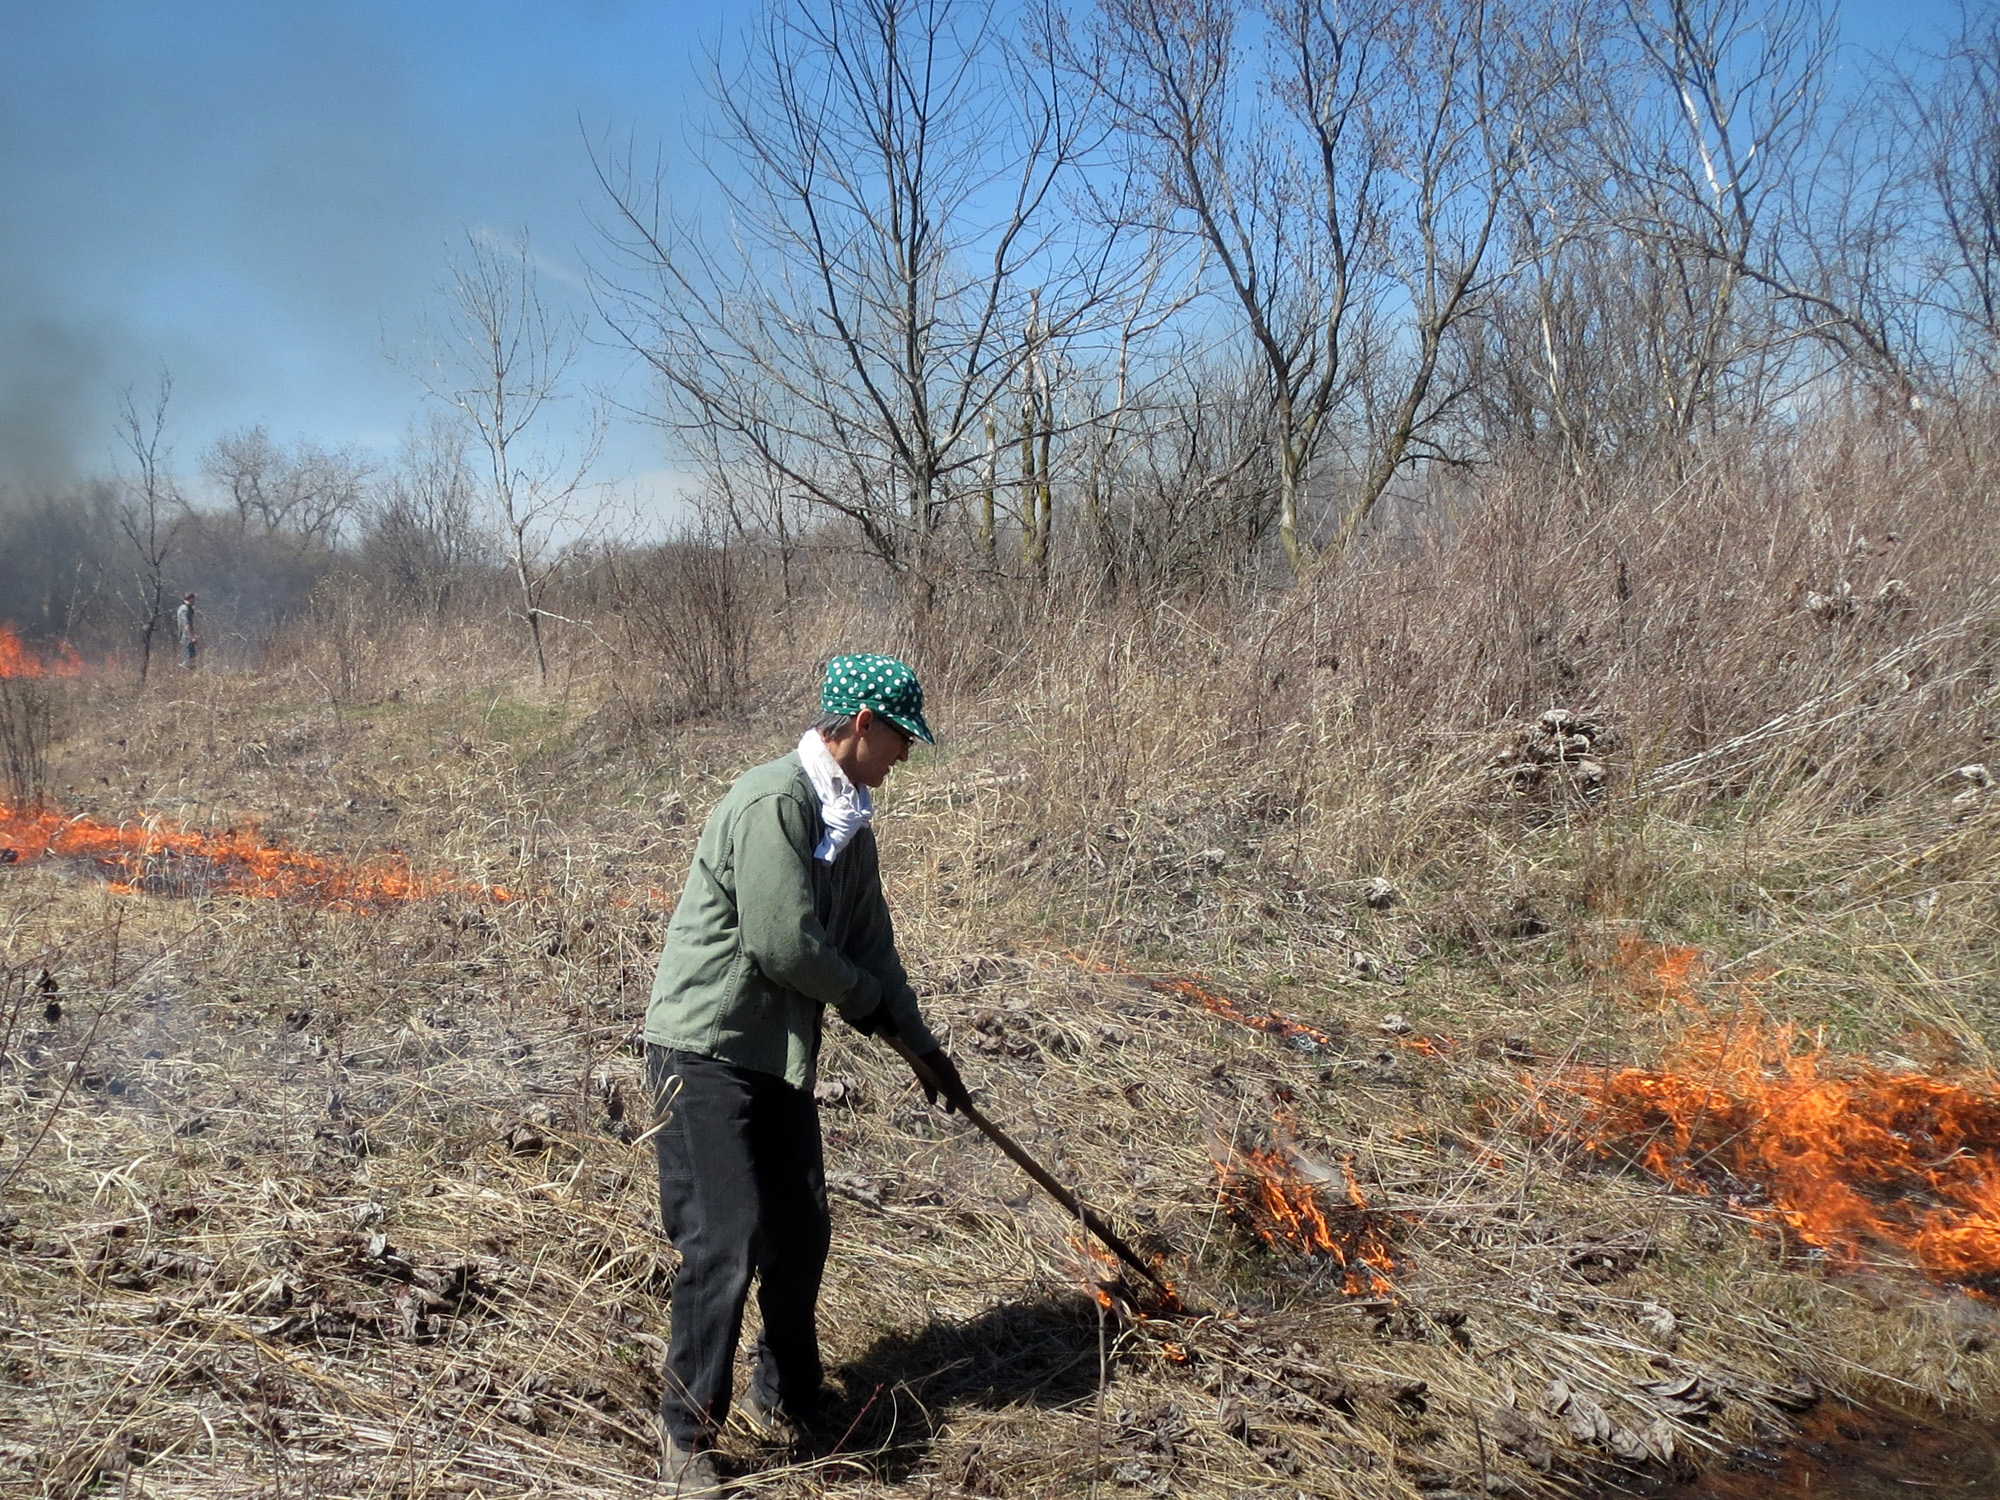 Prescribed burn crew, public lands